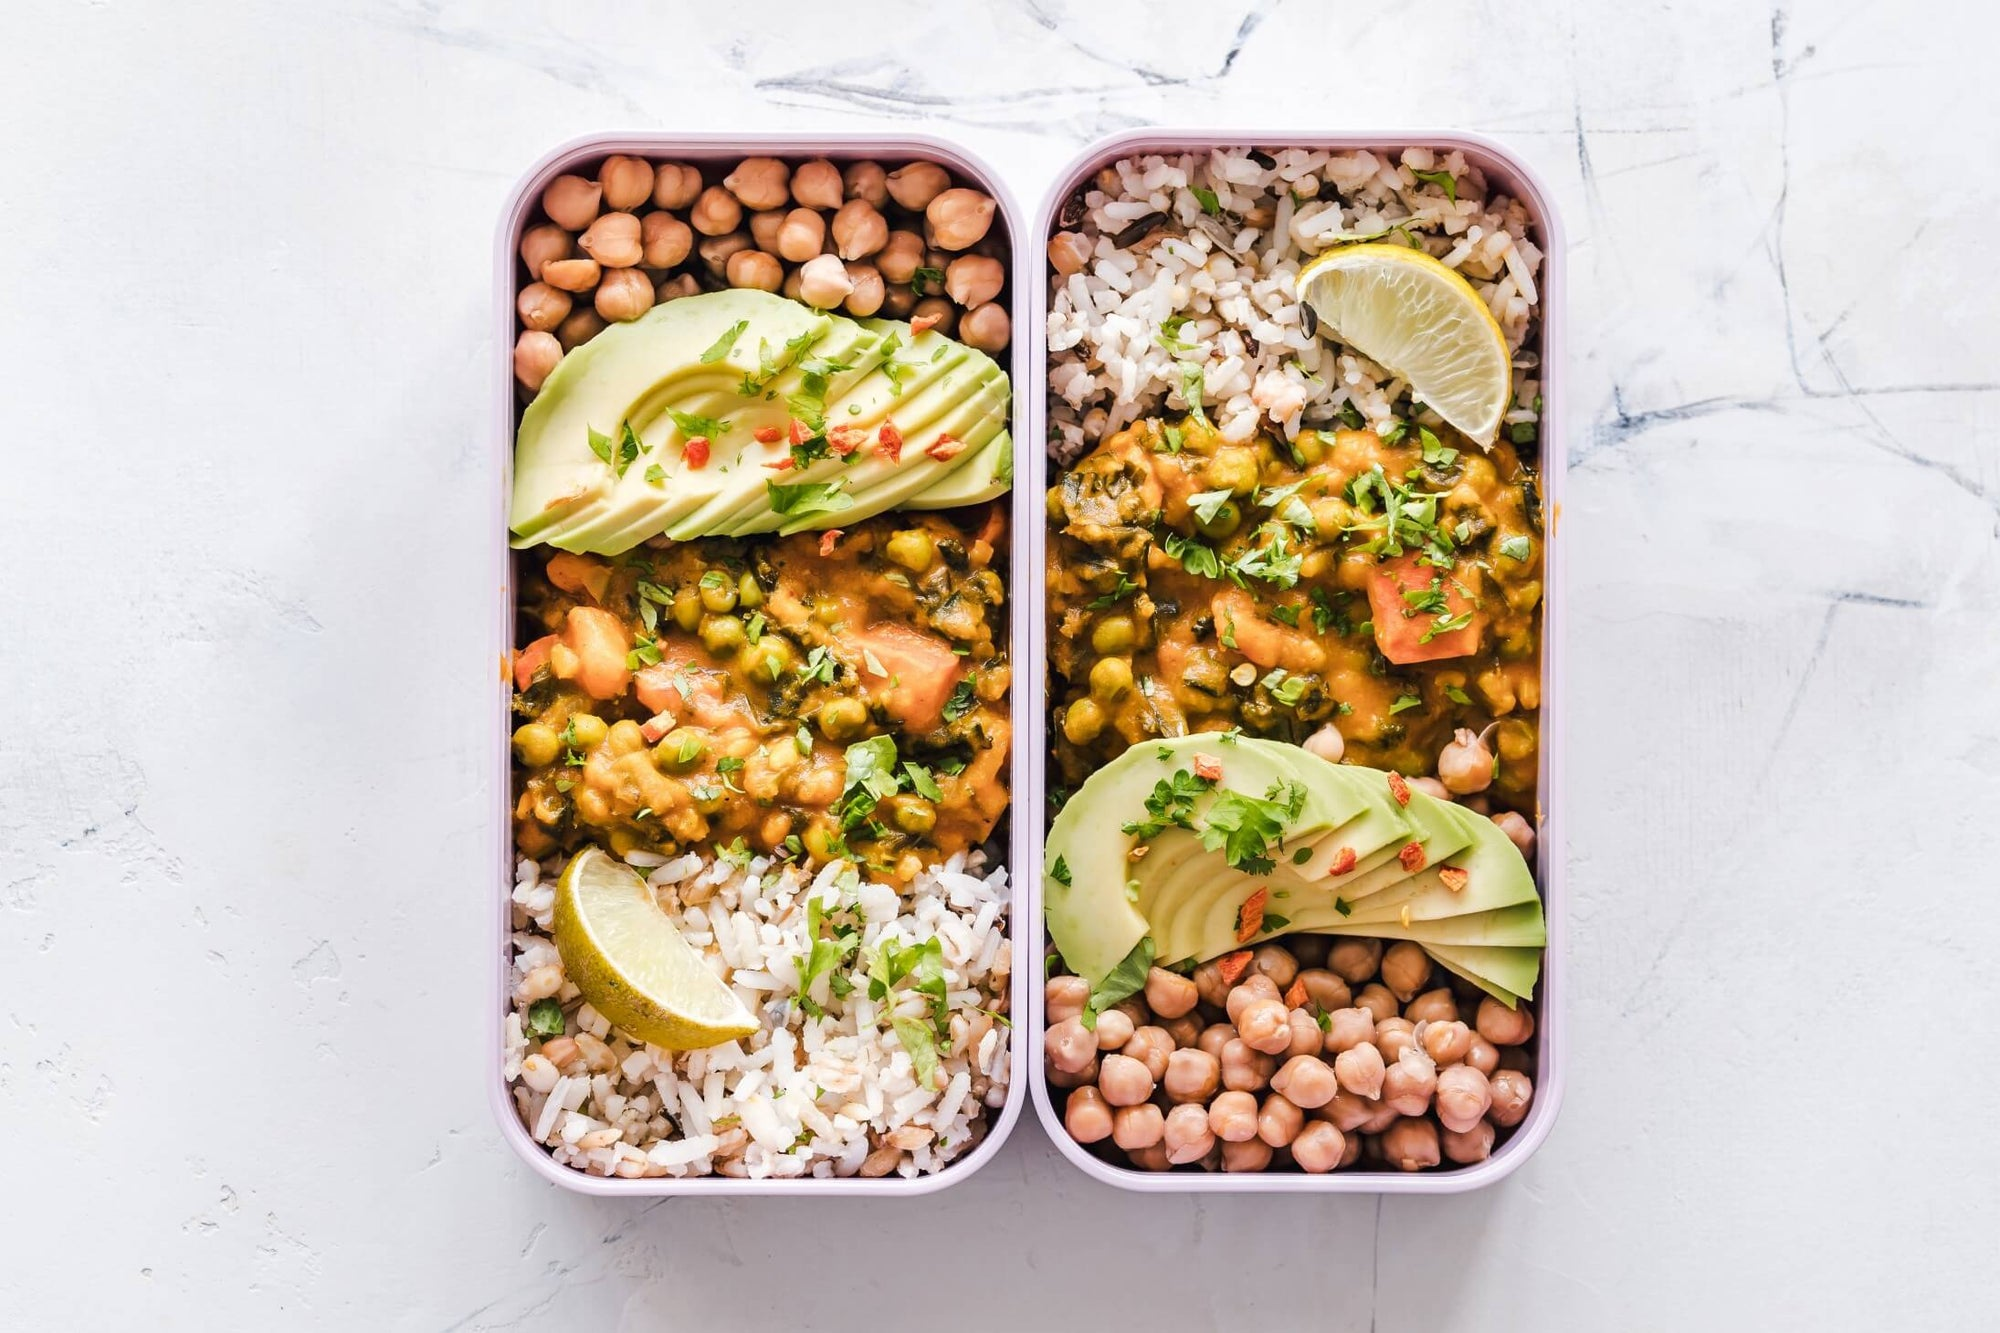 Chickpeas, brown rice and lentils in a to-go container